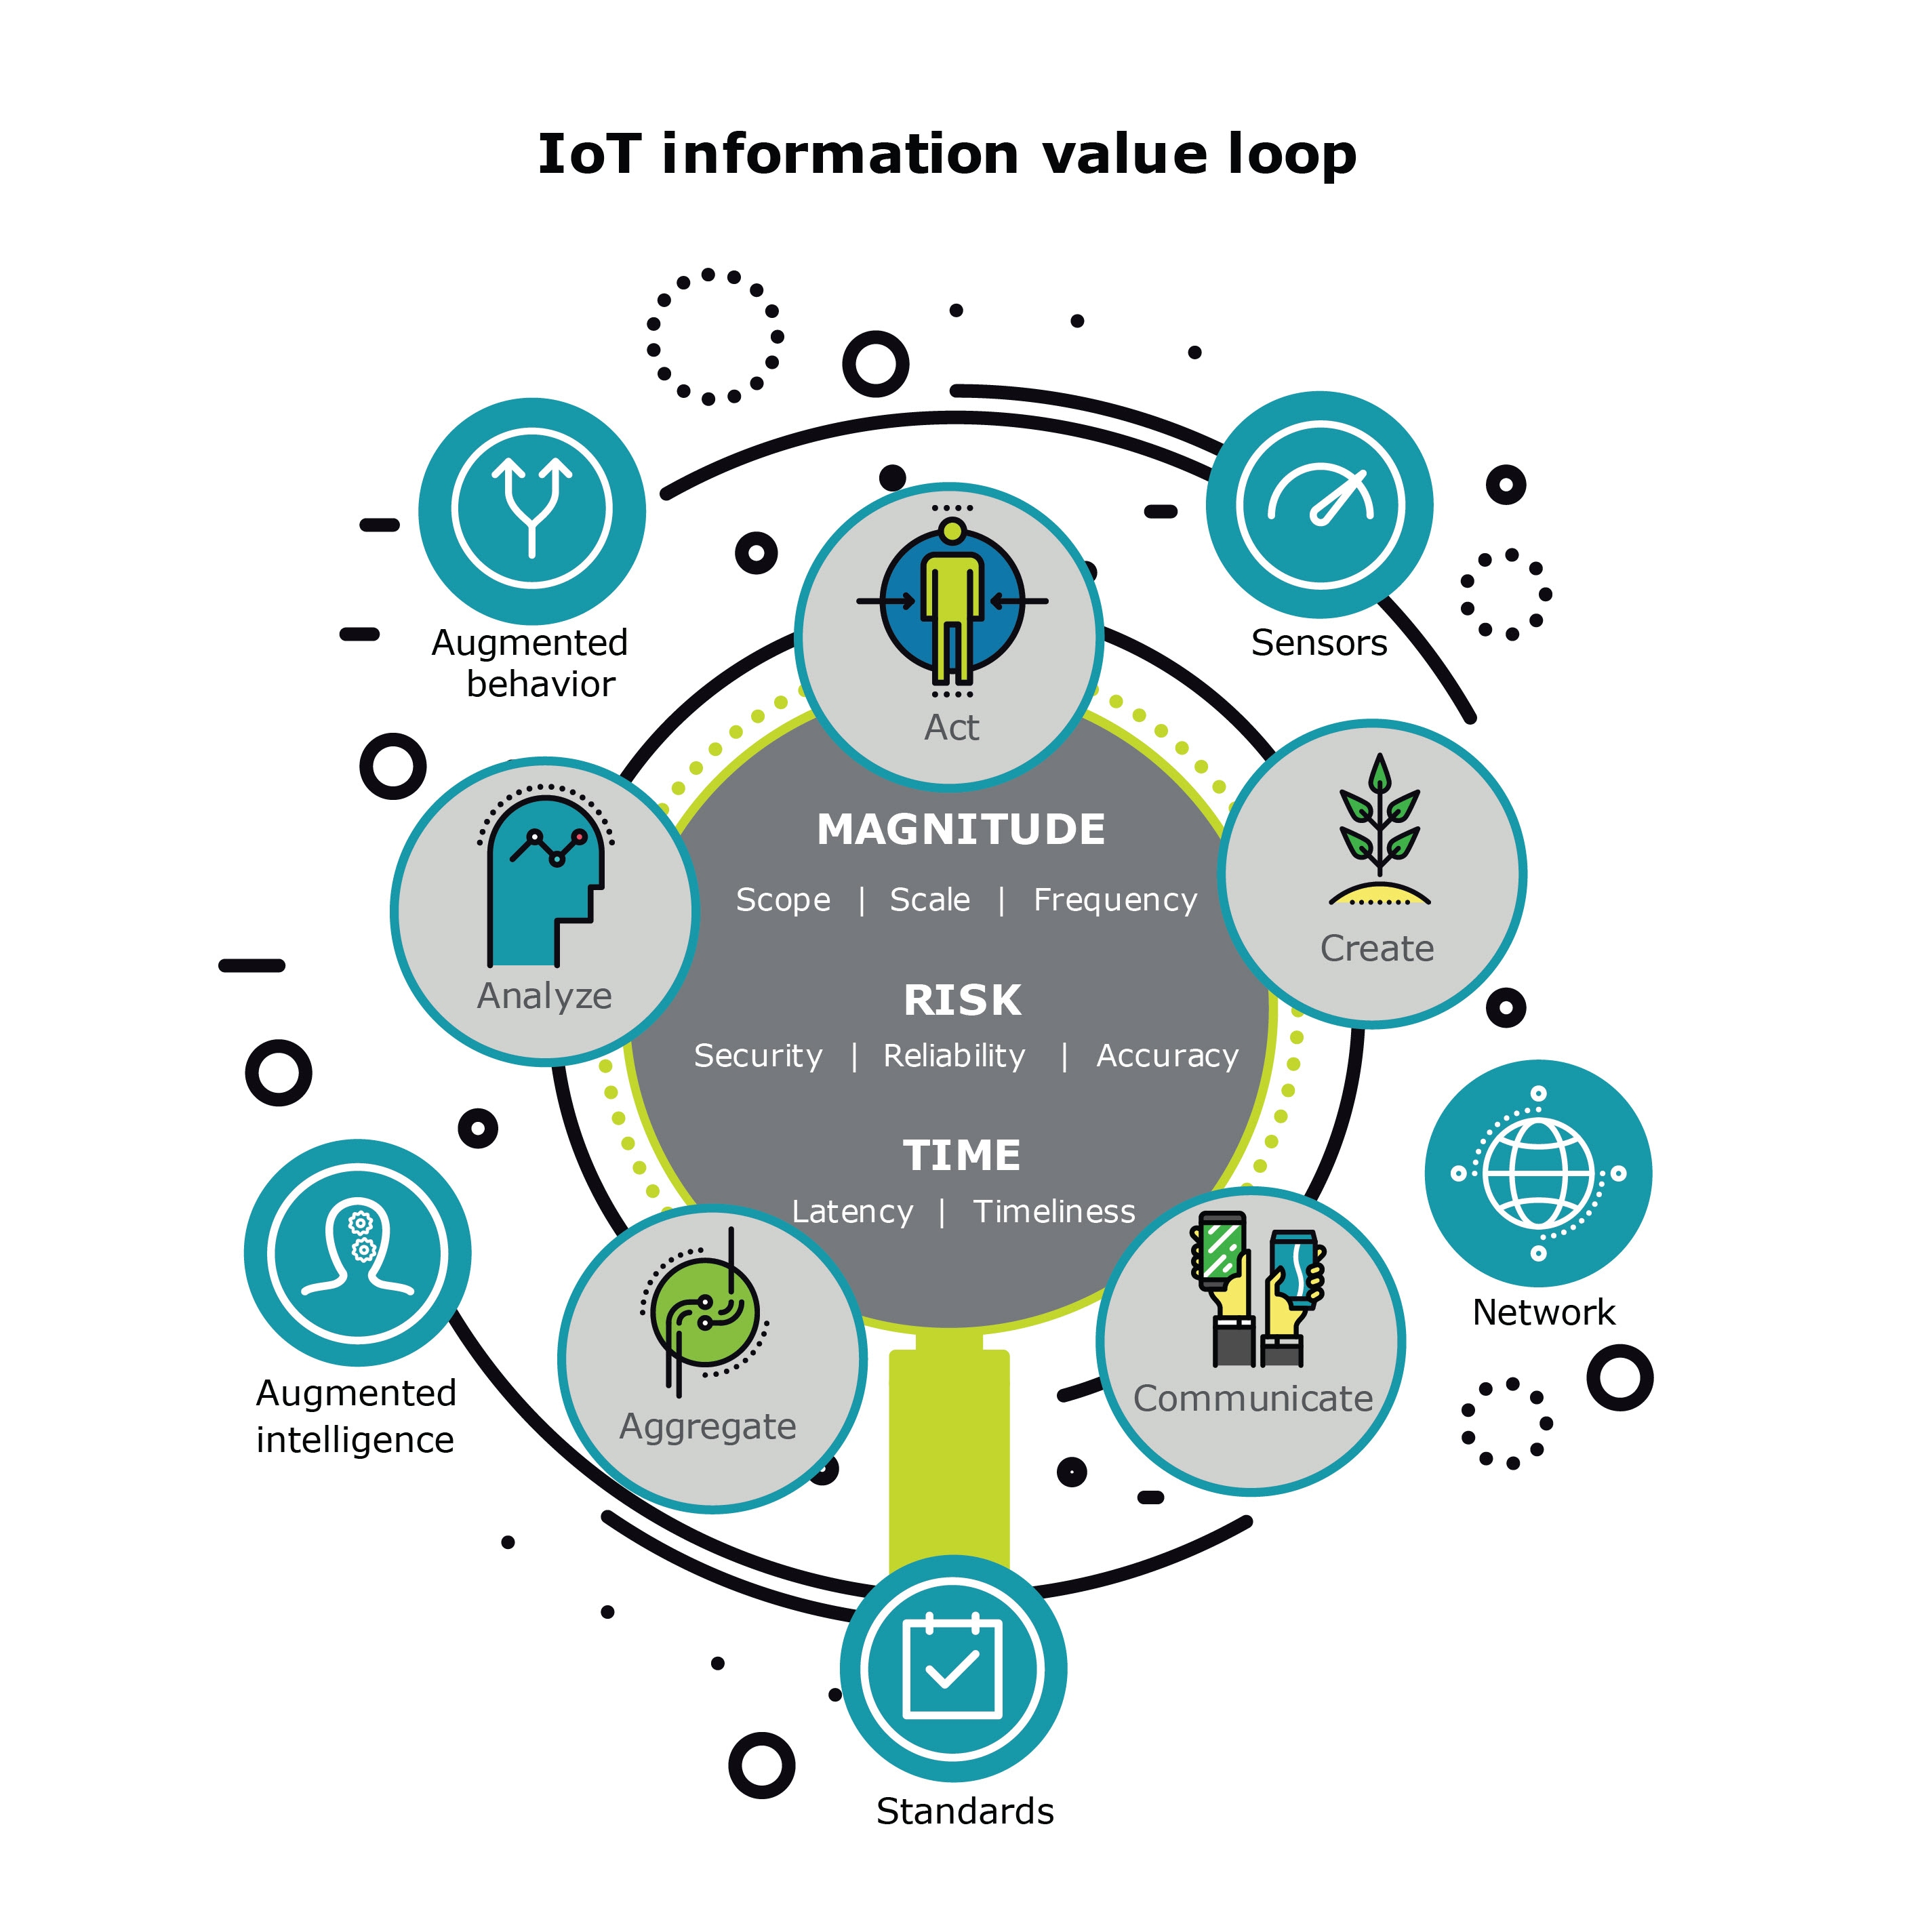 us-iot-value-loop.jpg (2850×2850)